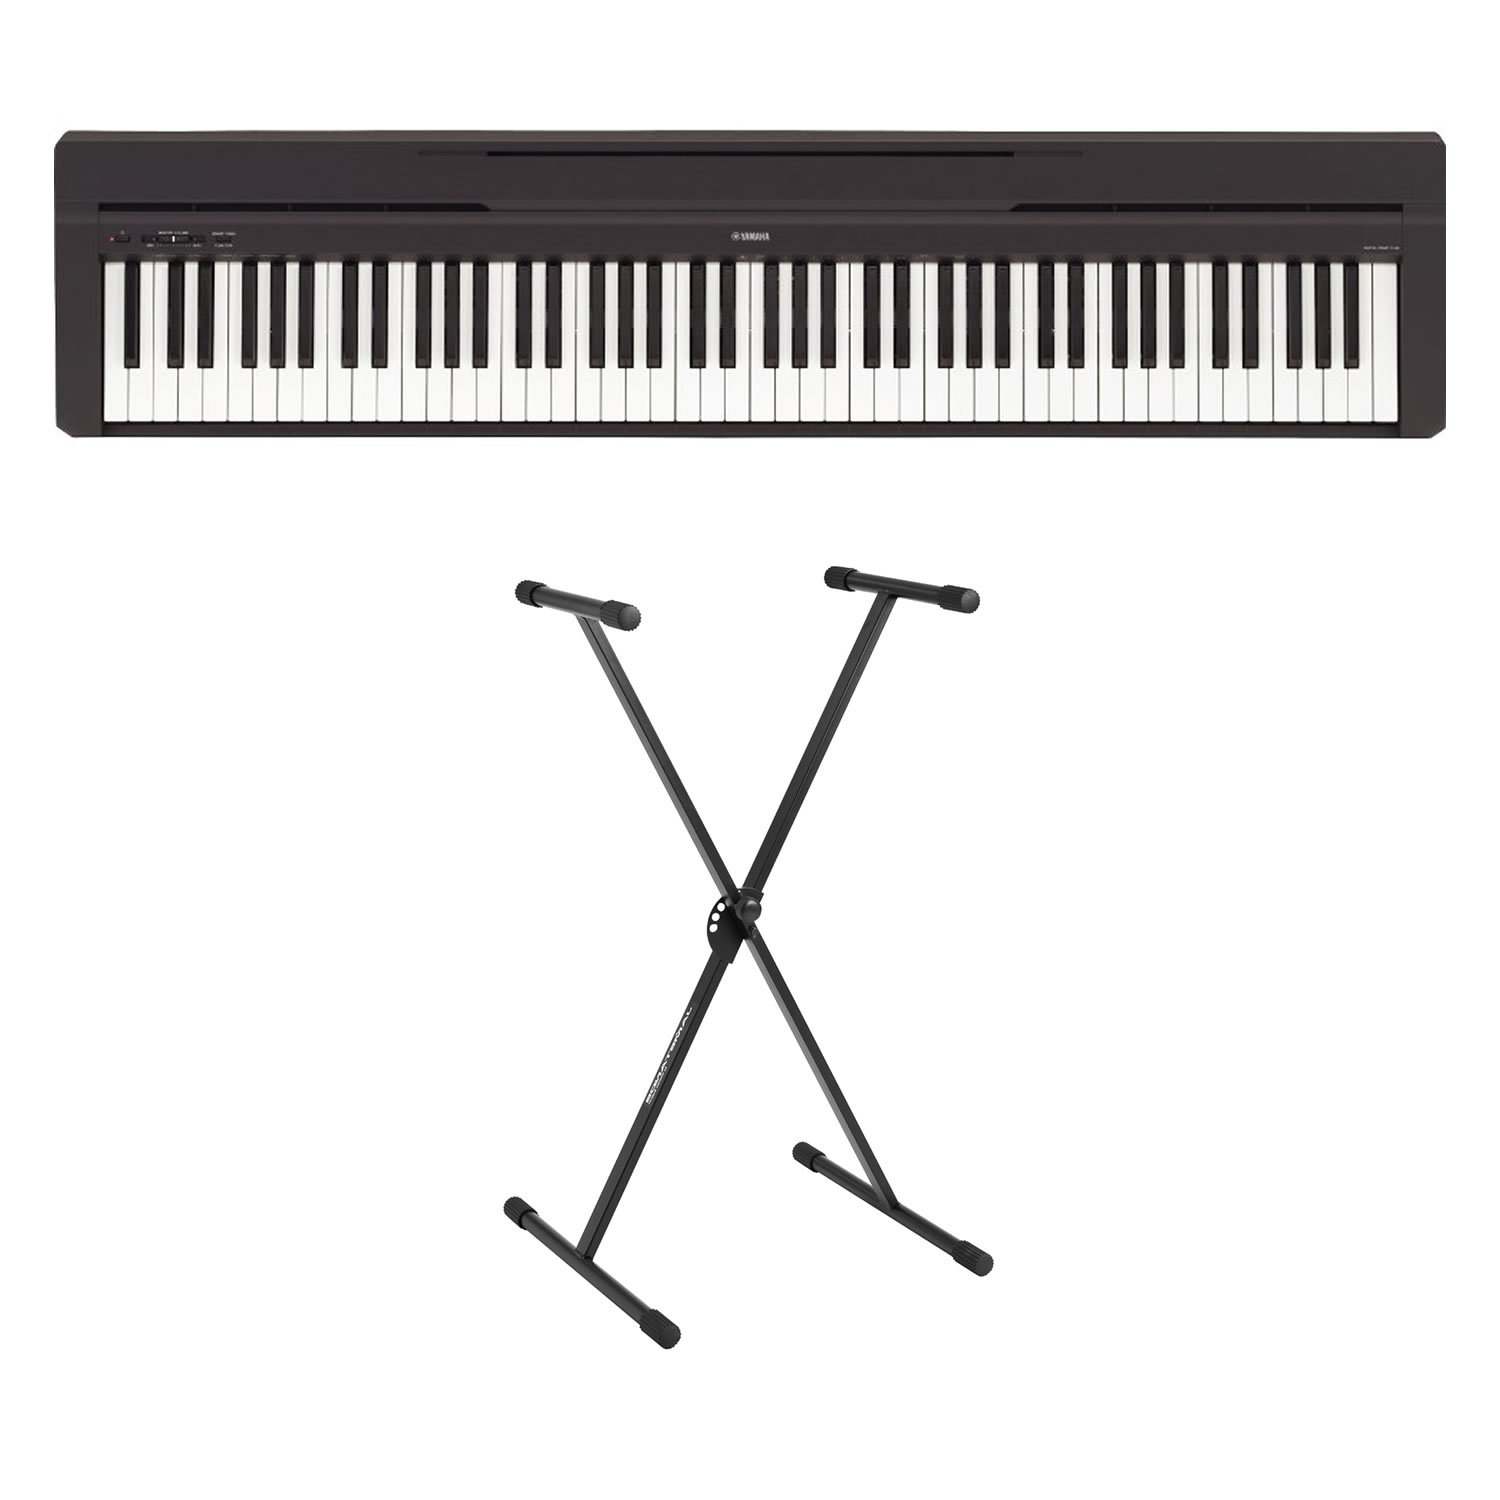 Yamaha P-45 88-Key Weighted Action Digital Piano Blac with stand by Yamaha